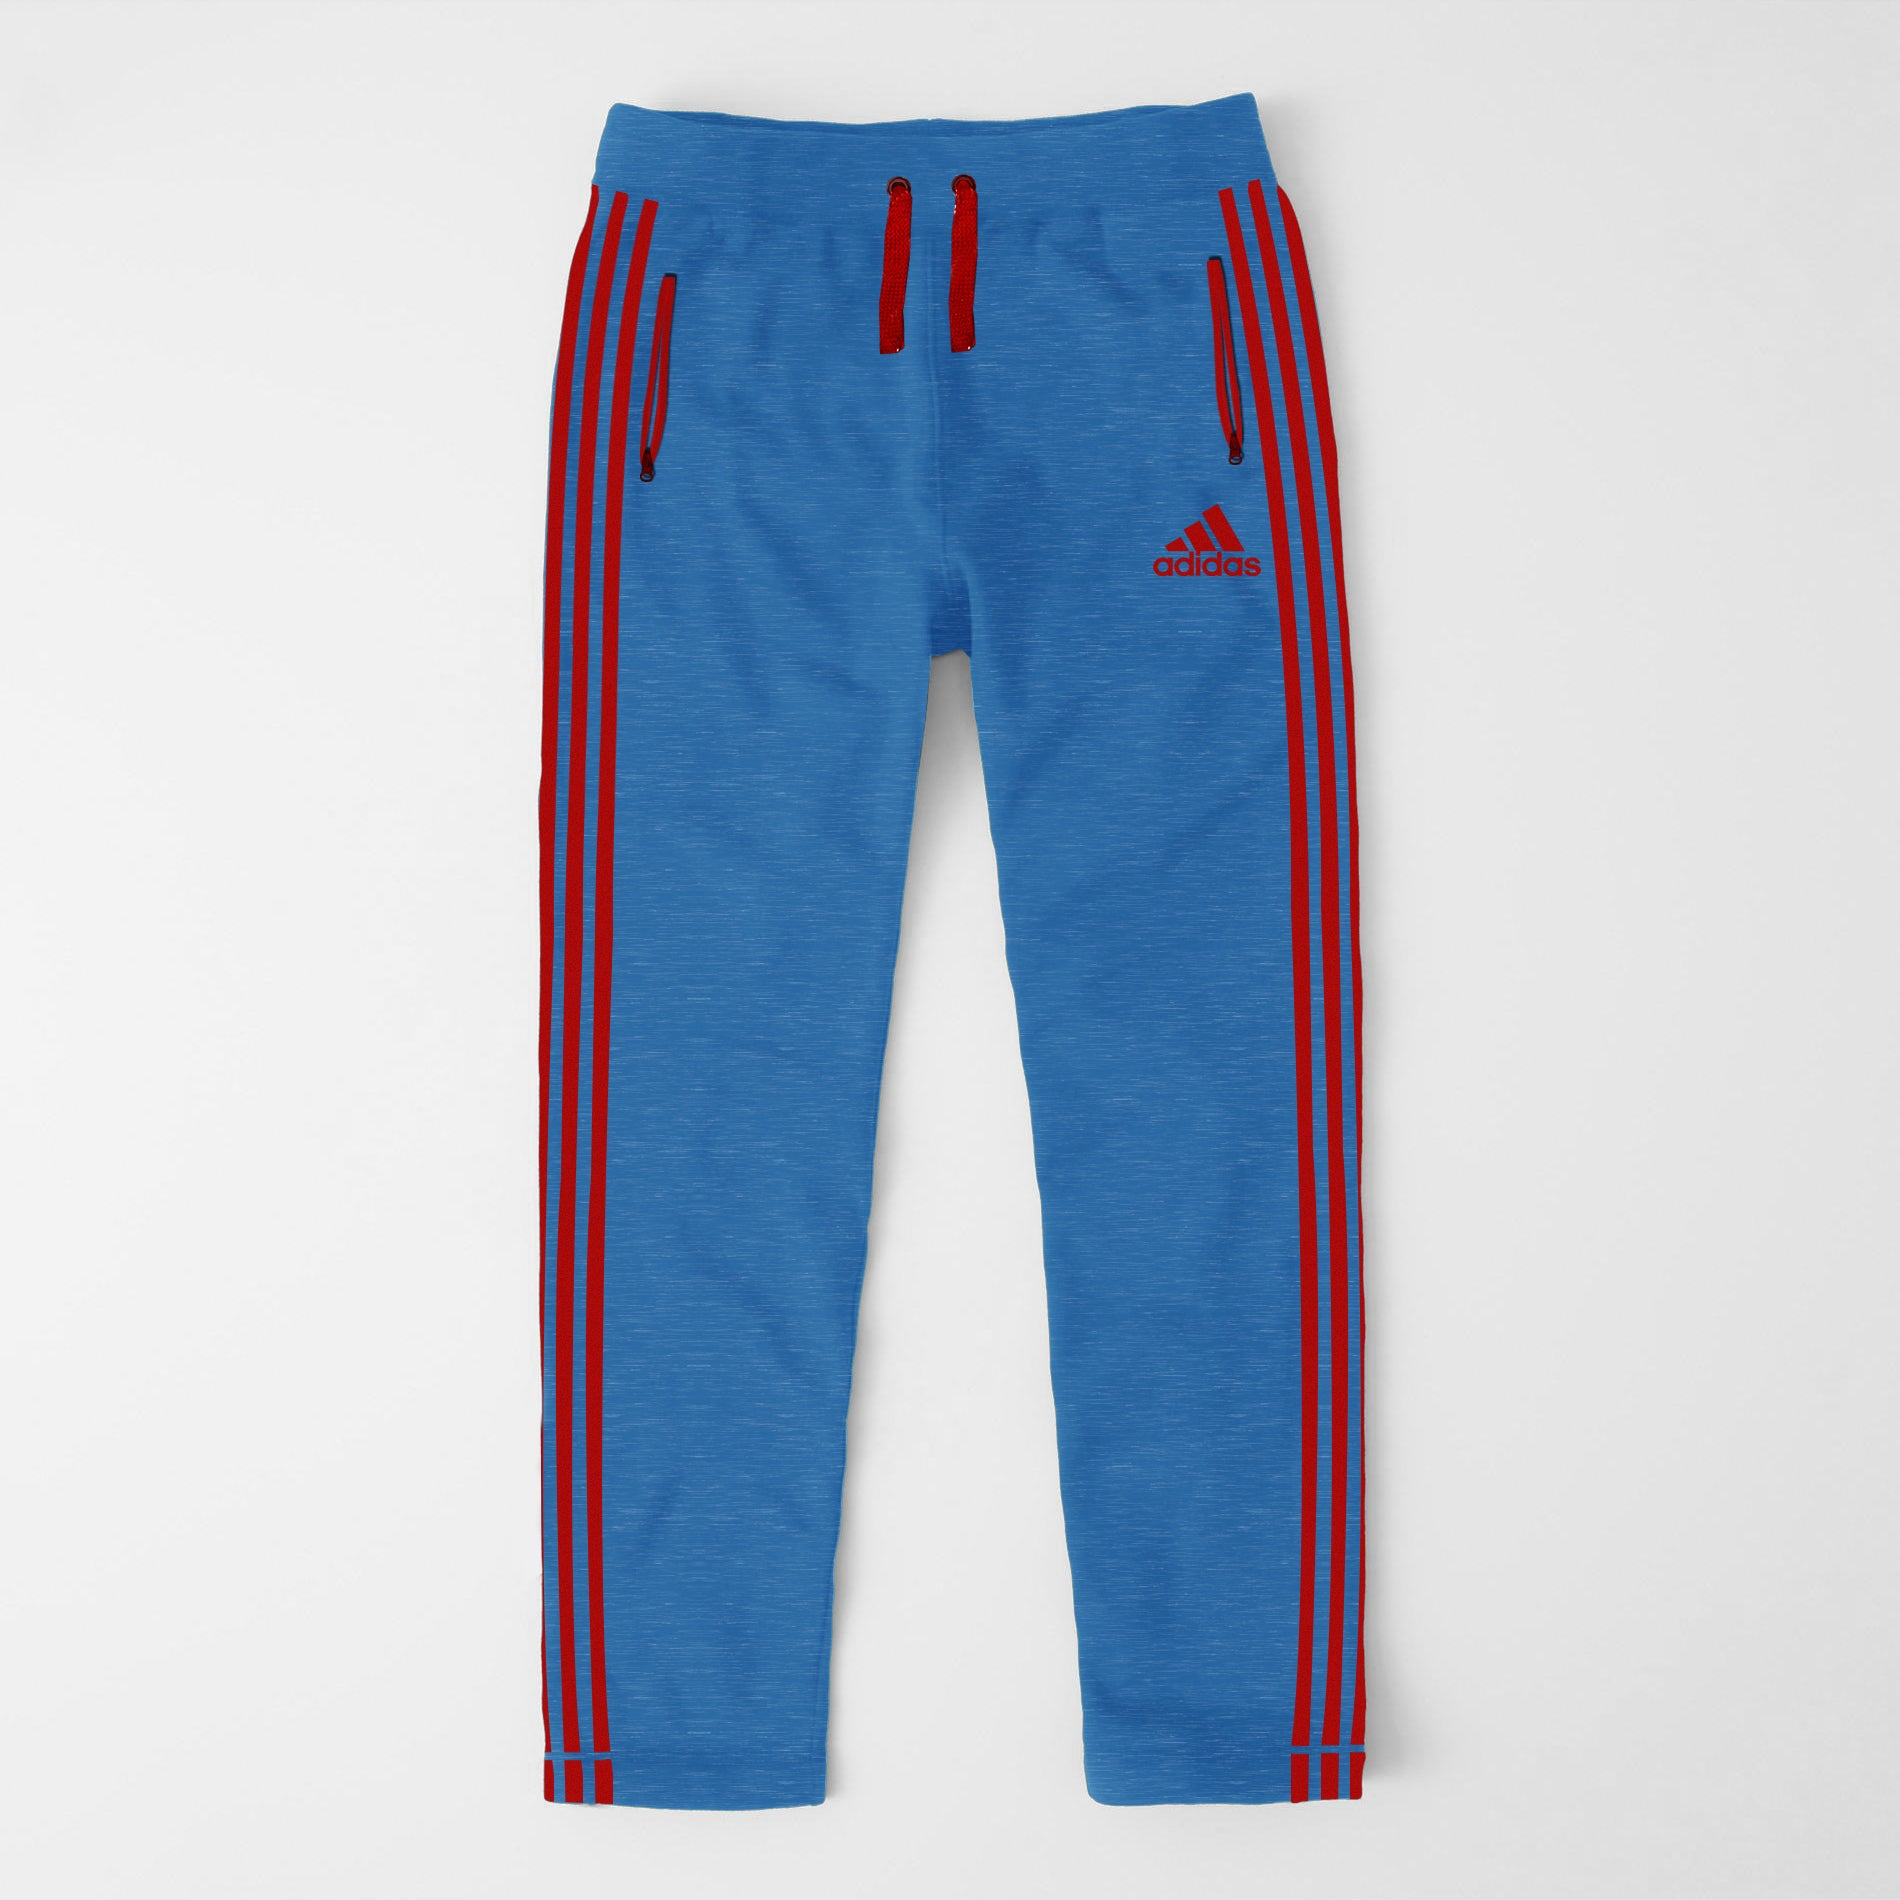 Adidas Single Jersey Regular Fit Trouser For Men-Dark Sky With Red Stripes-SP359